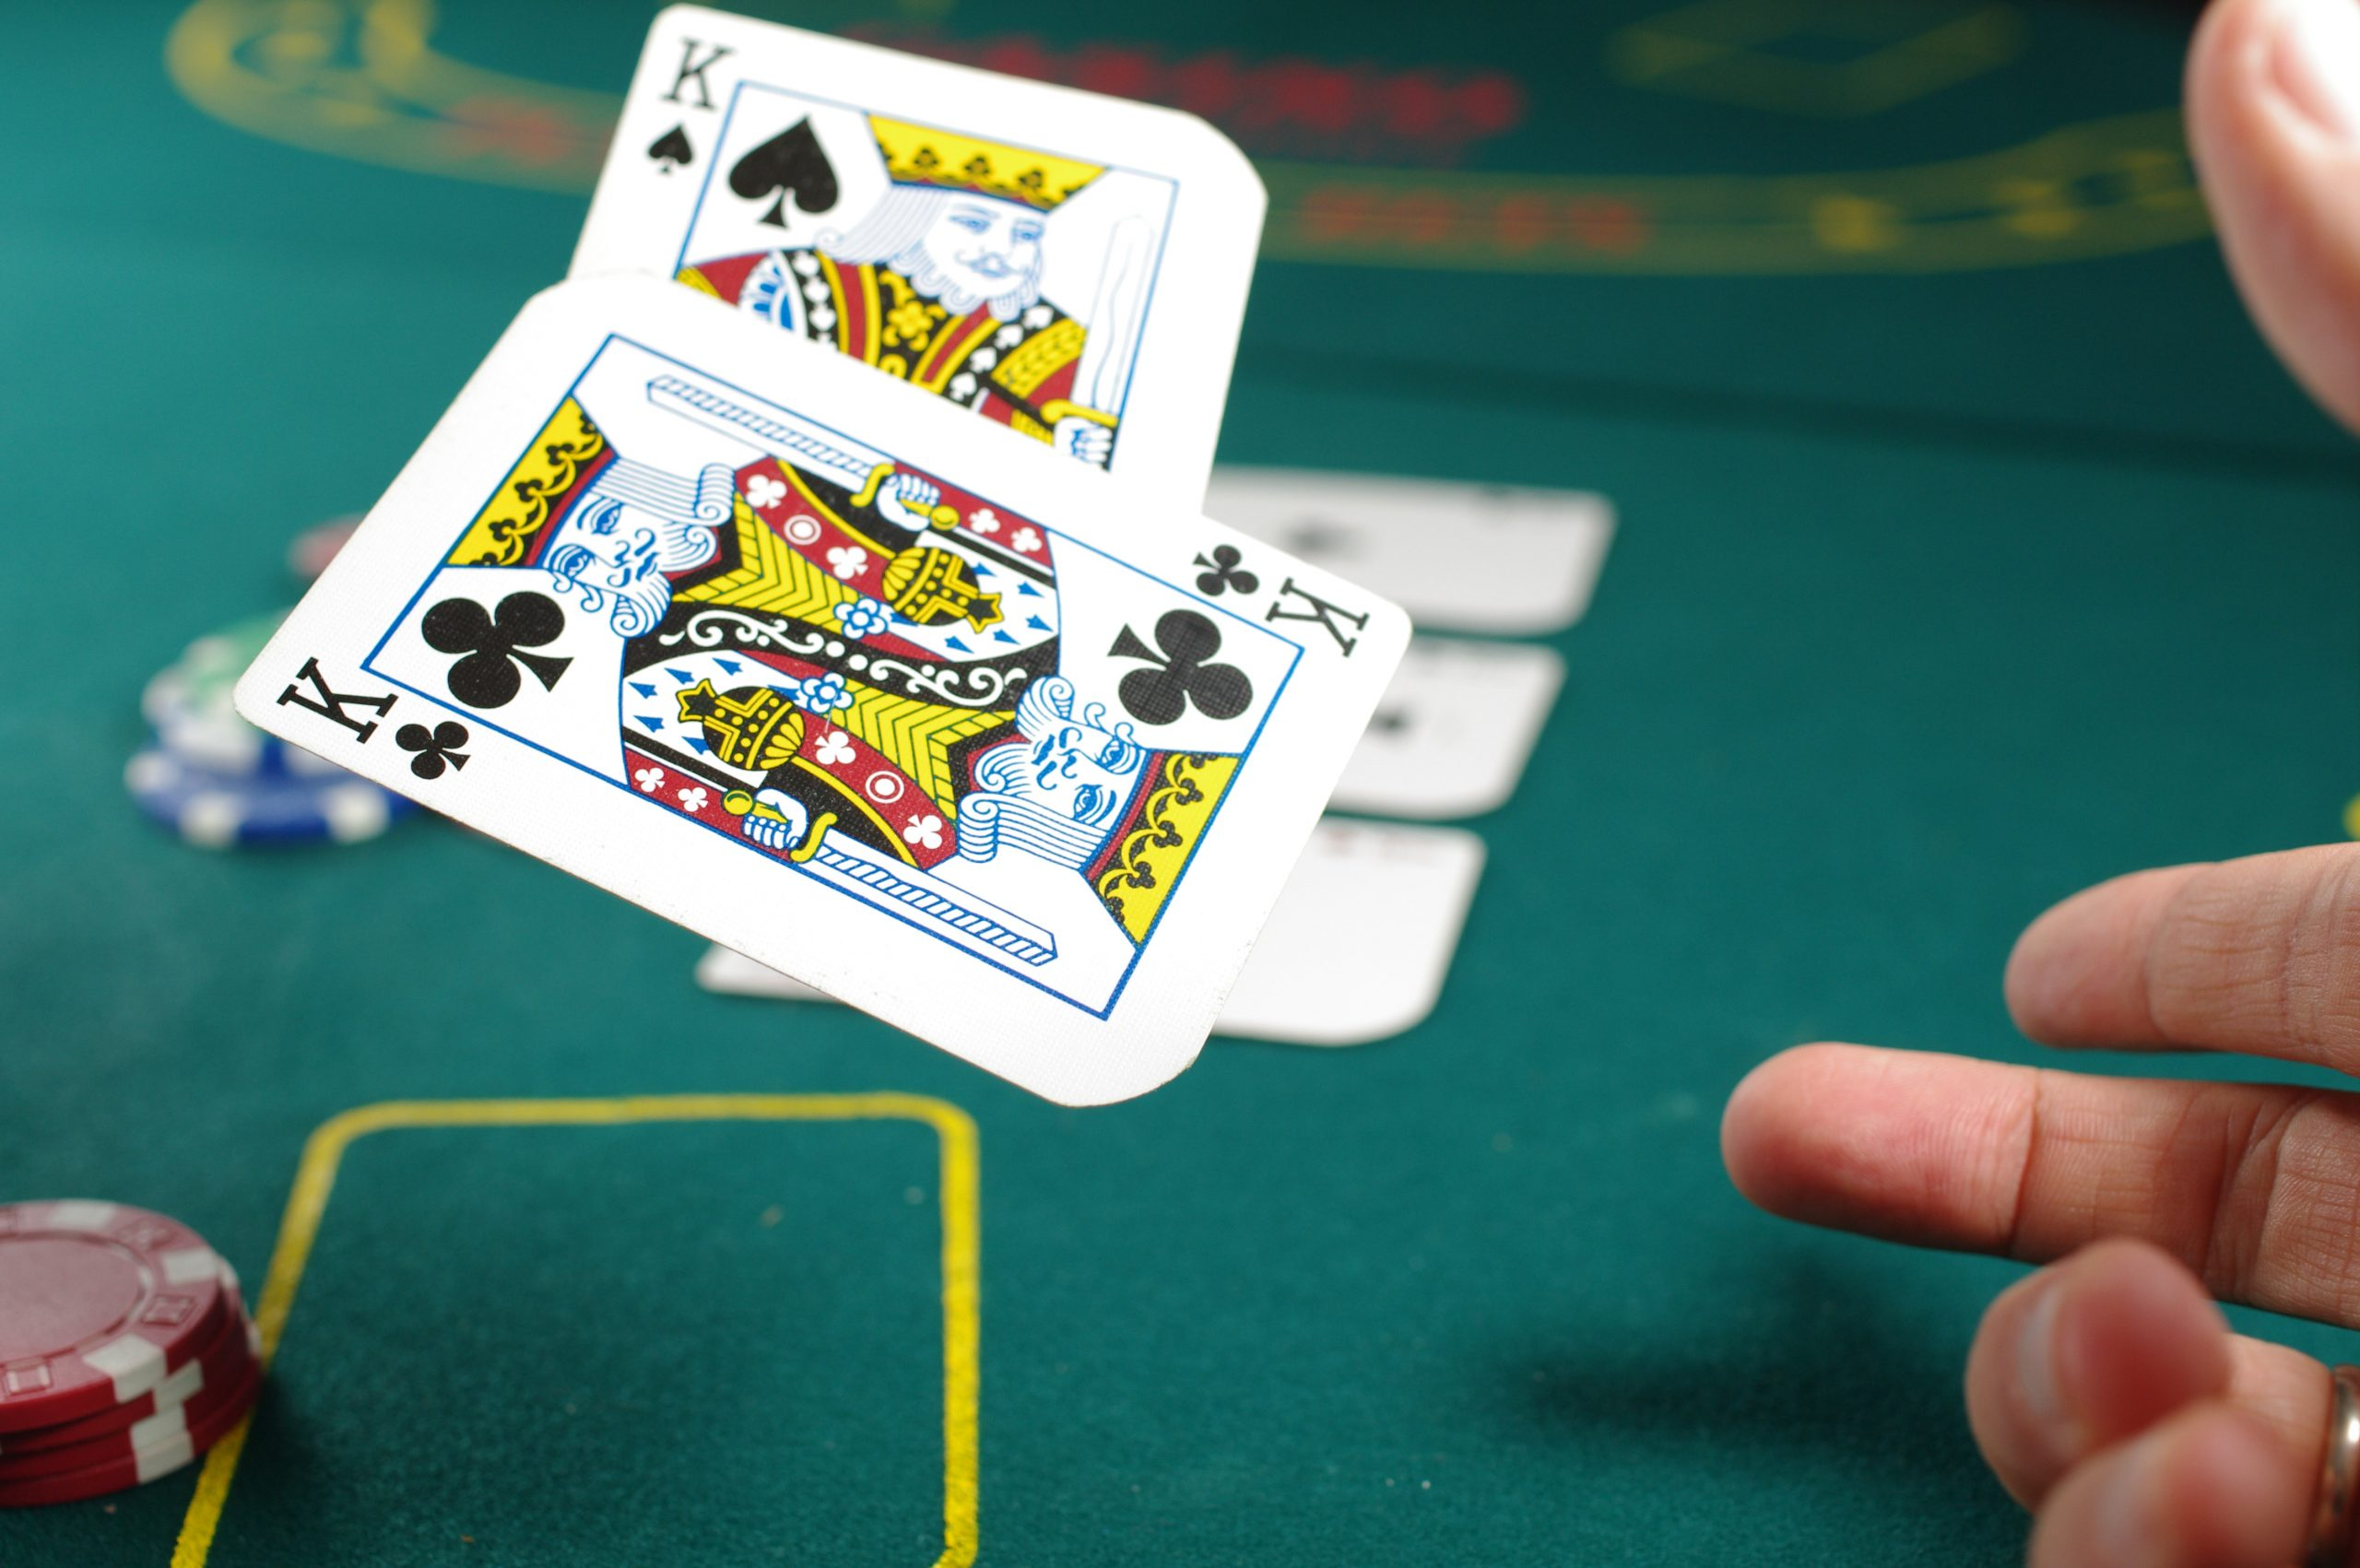 Branding Corporativo Casinos Online